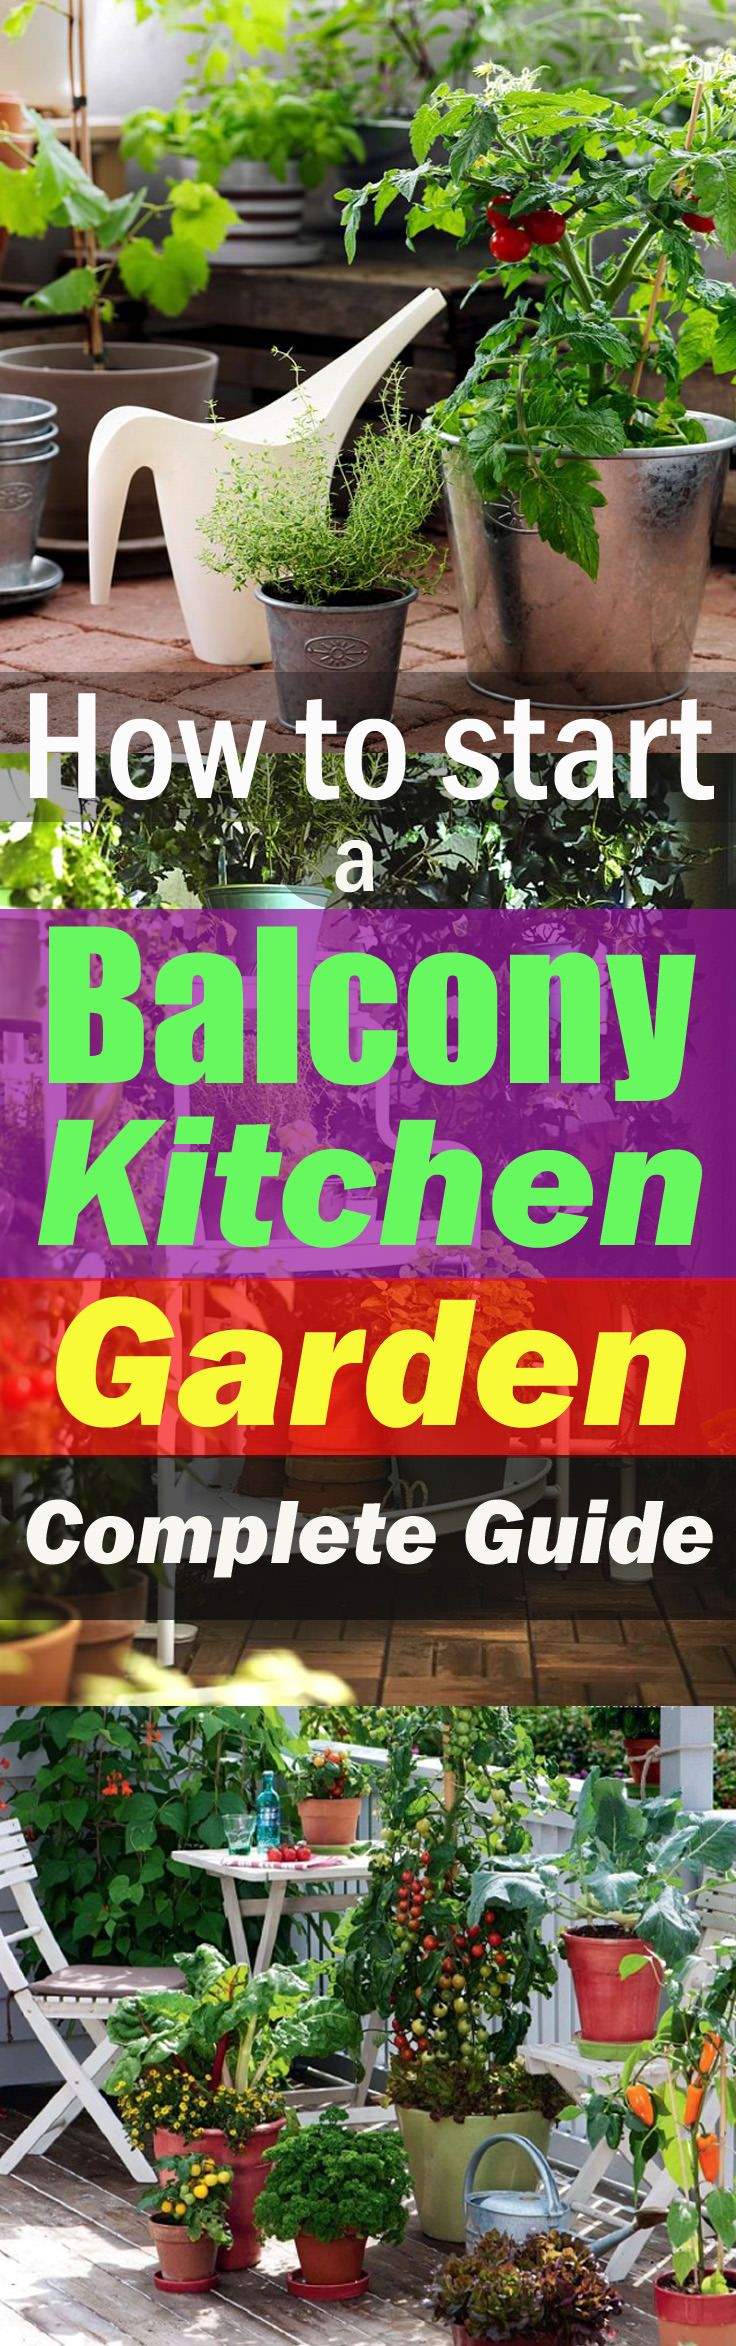 How to Start a Balcony Kitchen Garden Container Ve able GardeningVeggie GardensOrganic